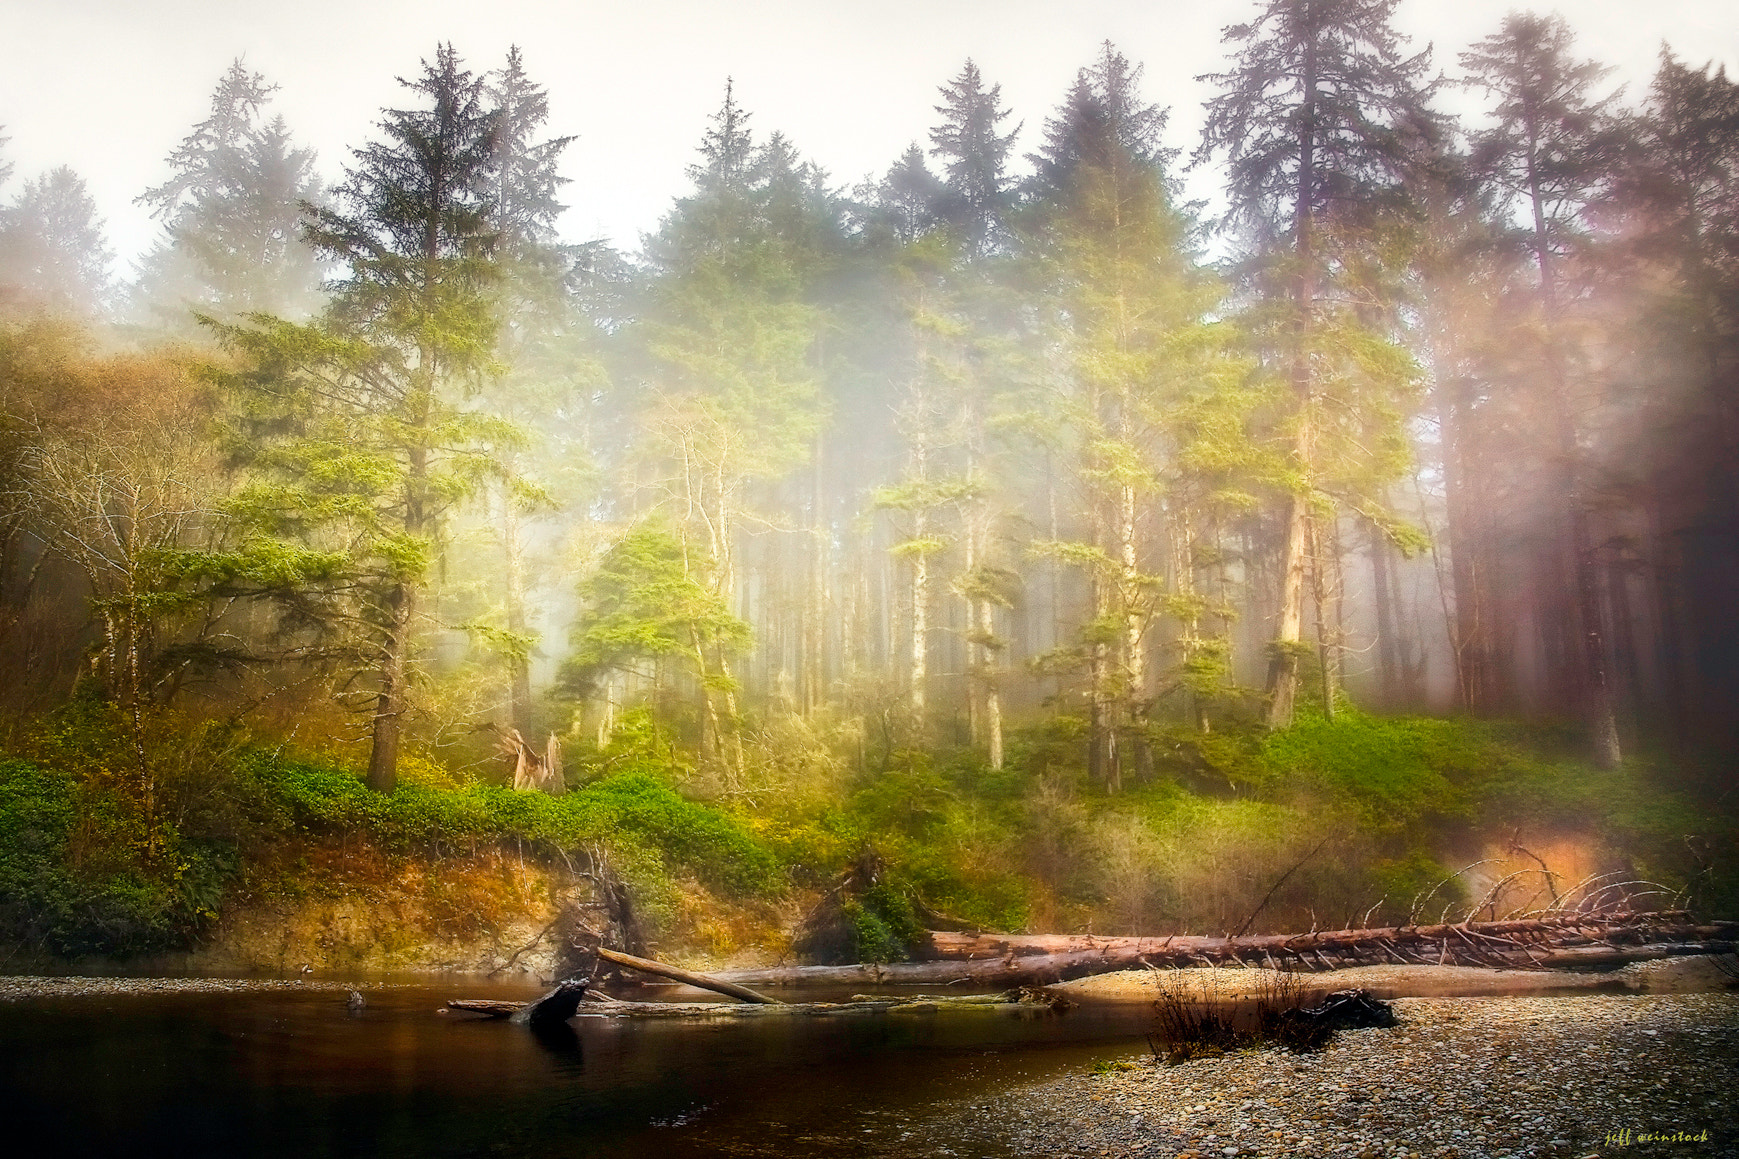 Photograph The Rain Forest by Jeff Weinstock on 500px